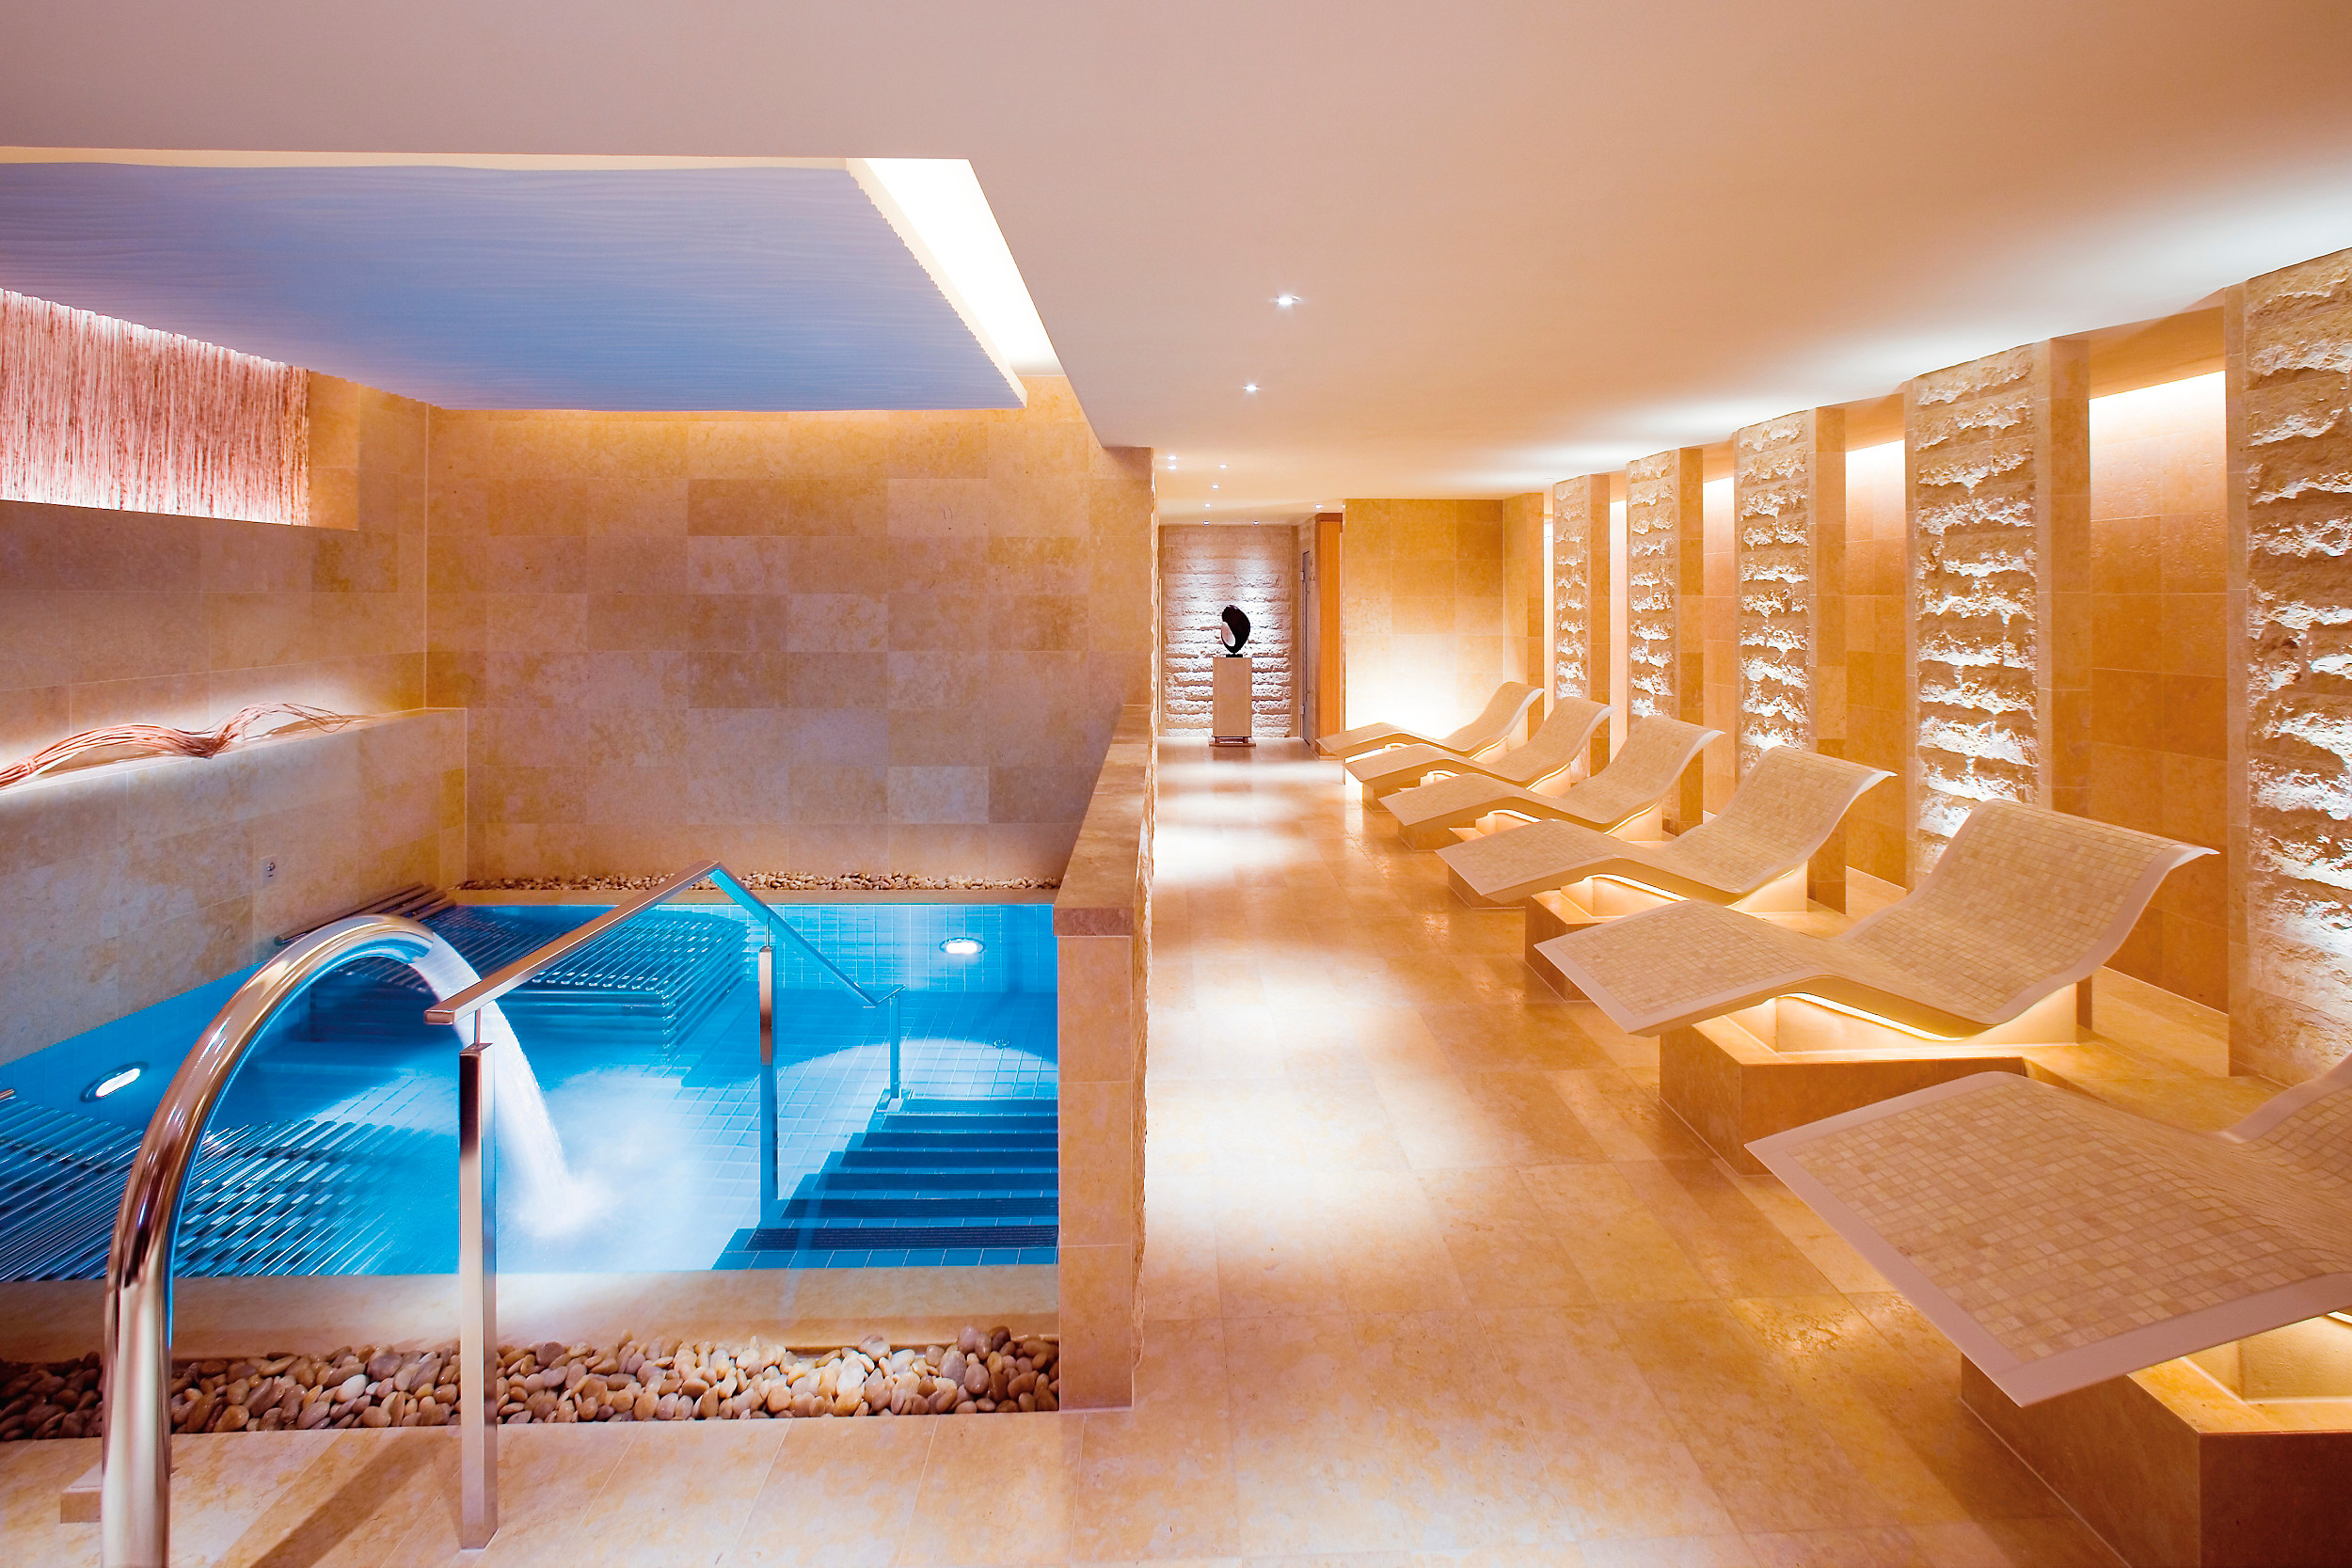 Arrive early to enjoy the spa facilities.